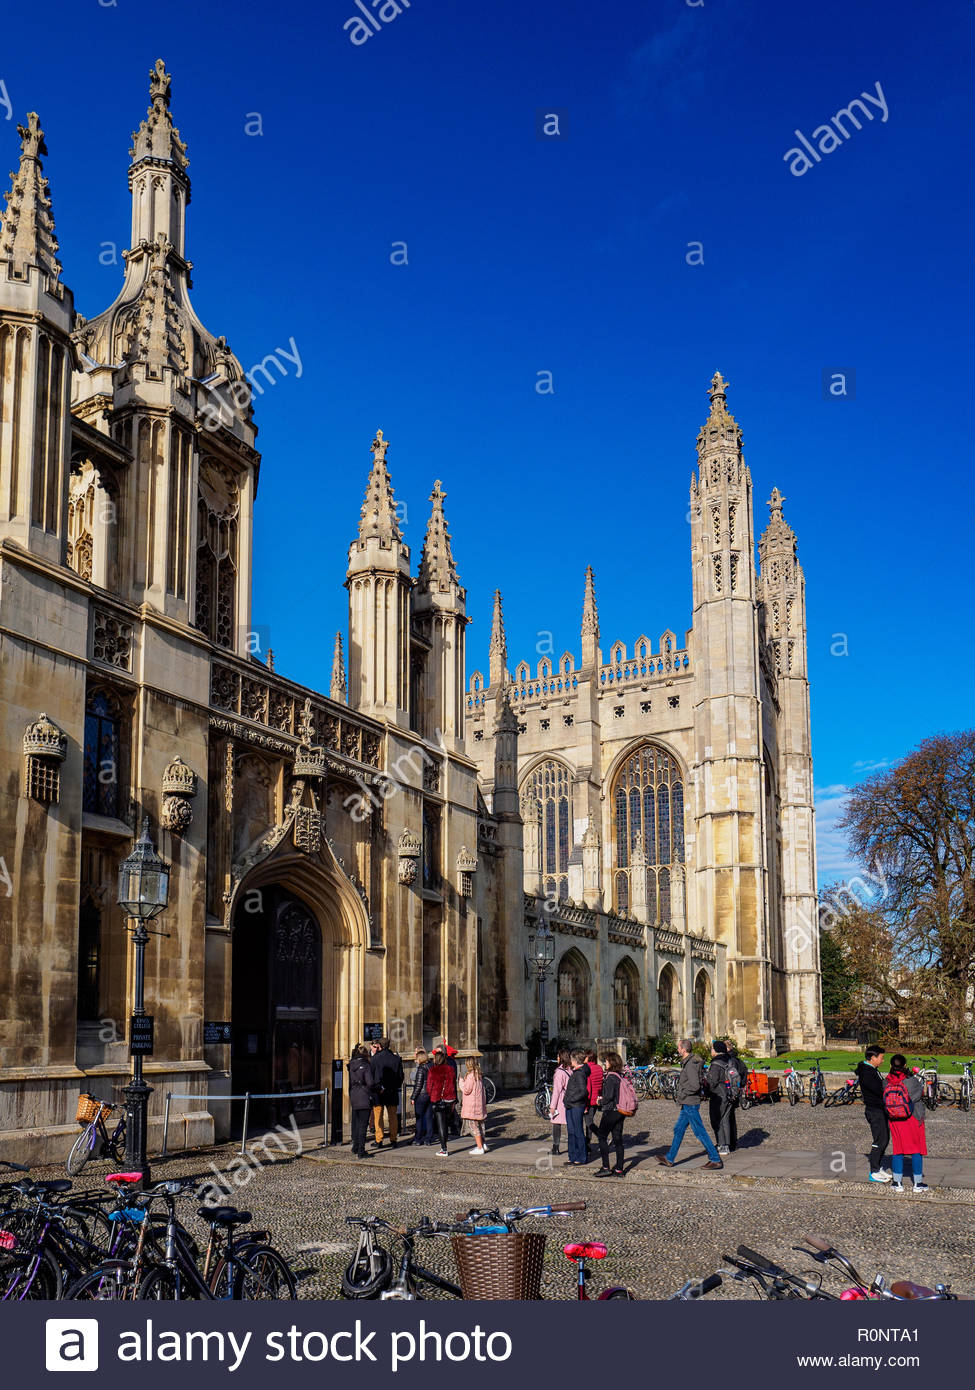 Cambridge Tourism - Tourists outside Kings College in Central Cambridge - Stock Image